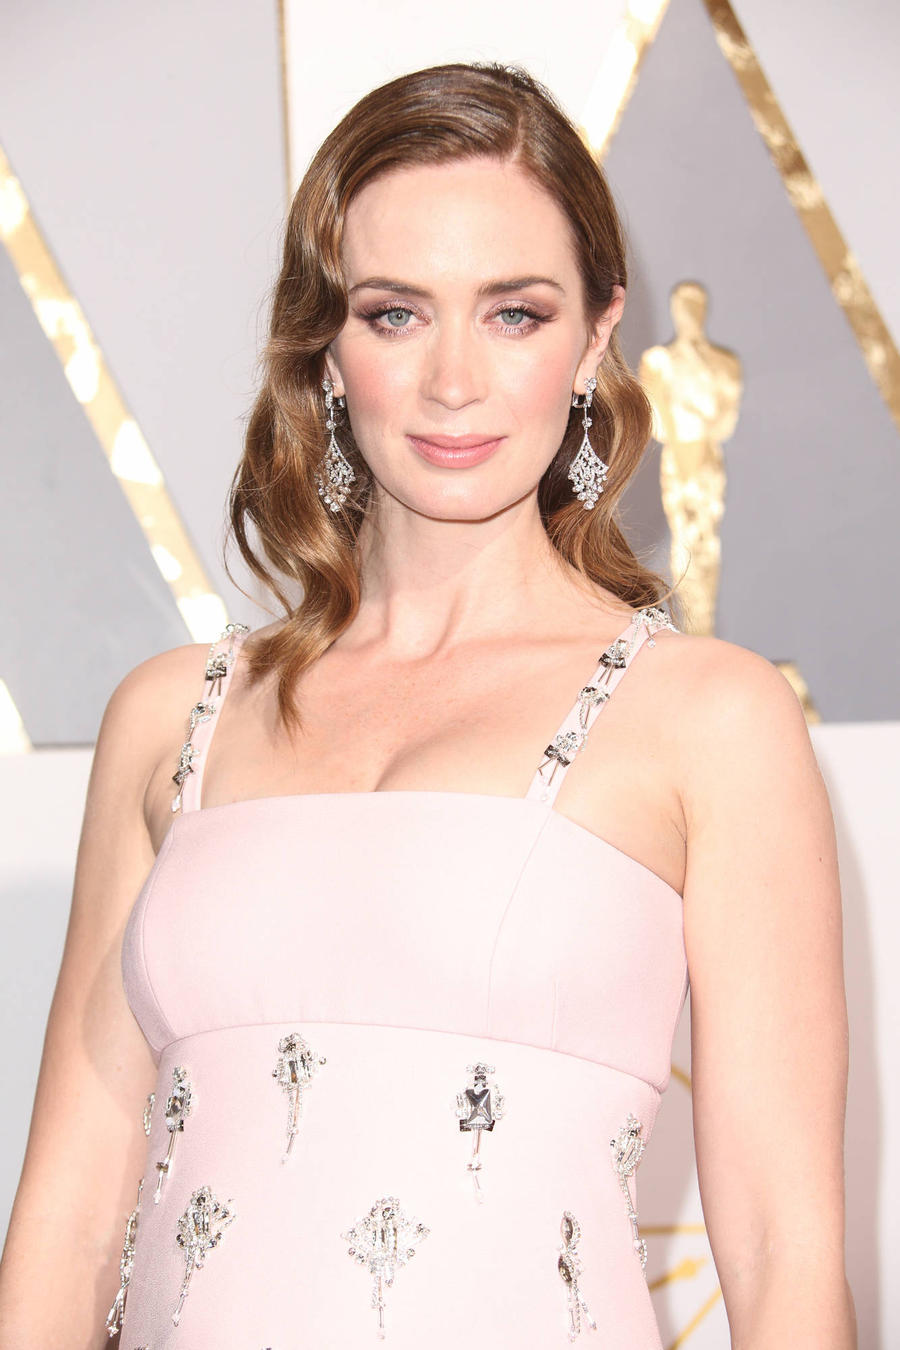 Emily Blunt Bored With New Movie's Frozen Comparisons